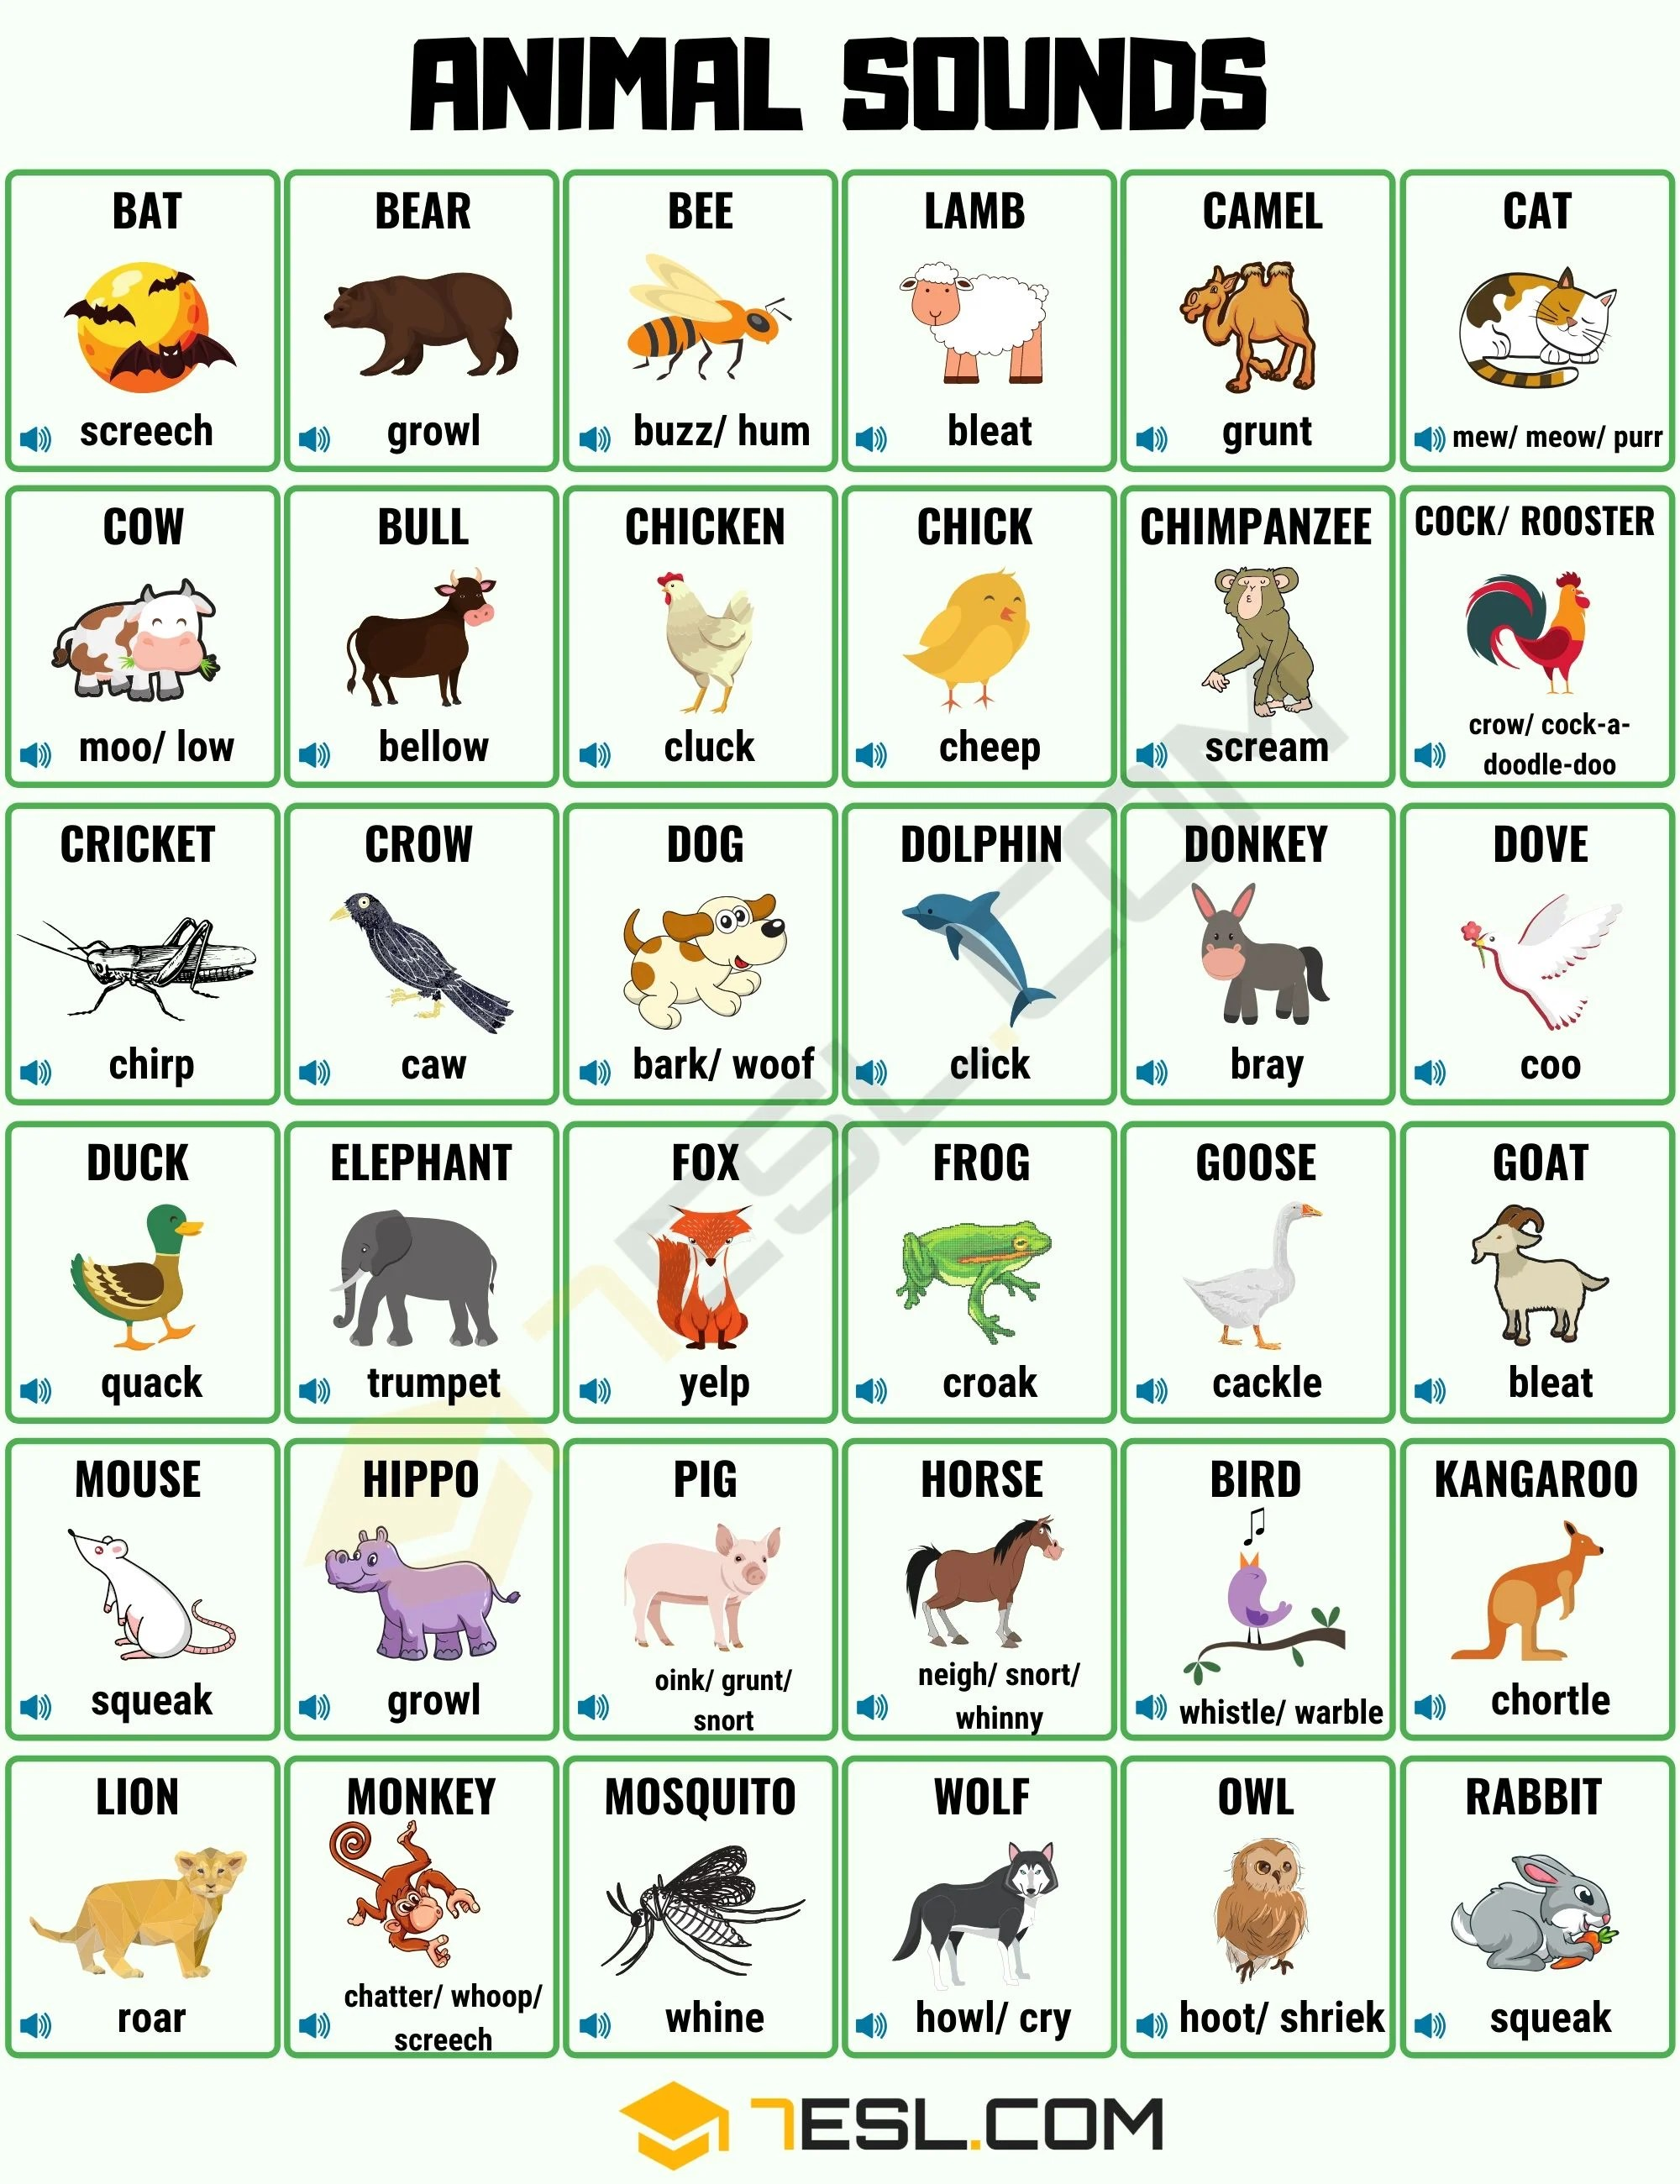 Animal Sounds List Of Different Animal Sounds With